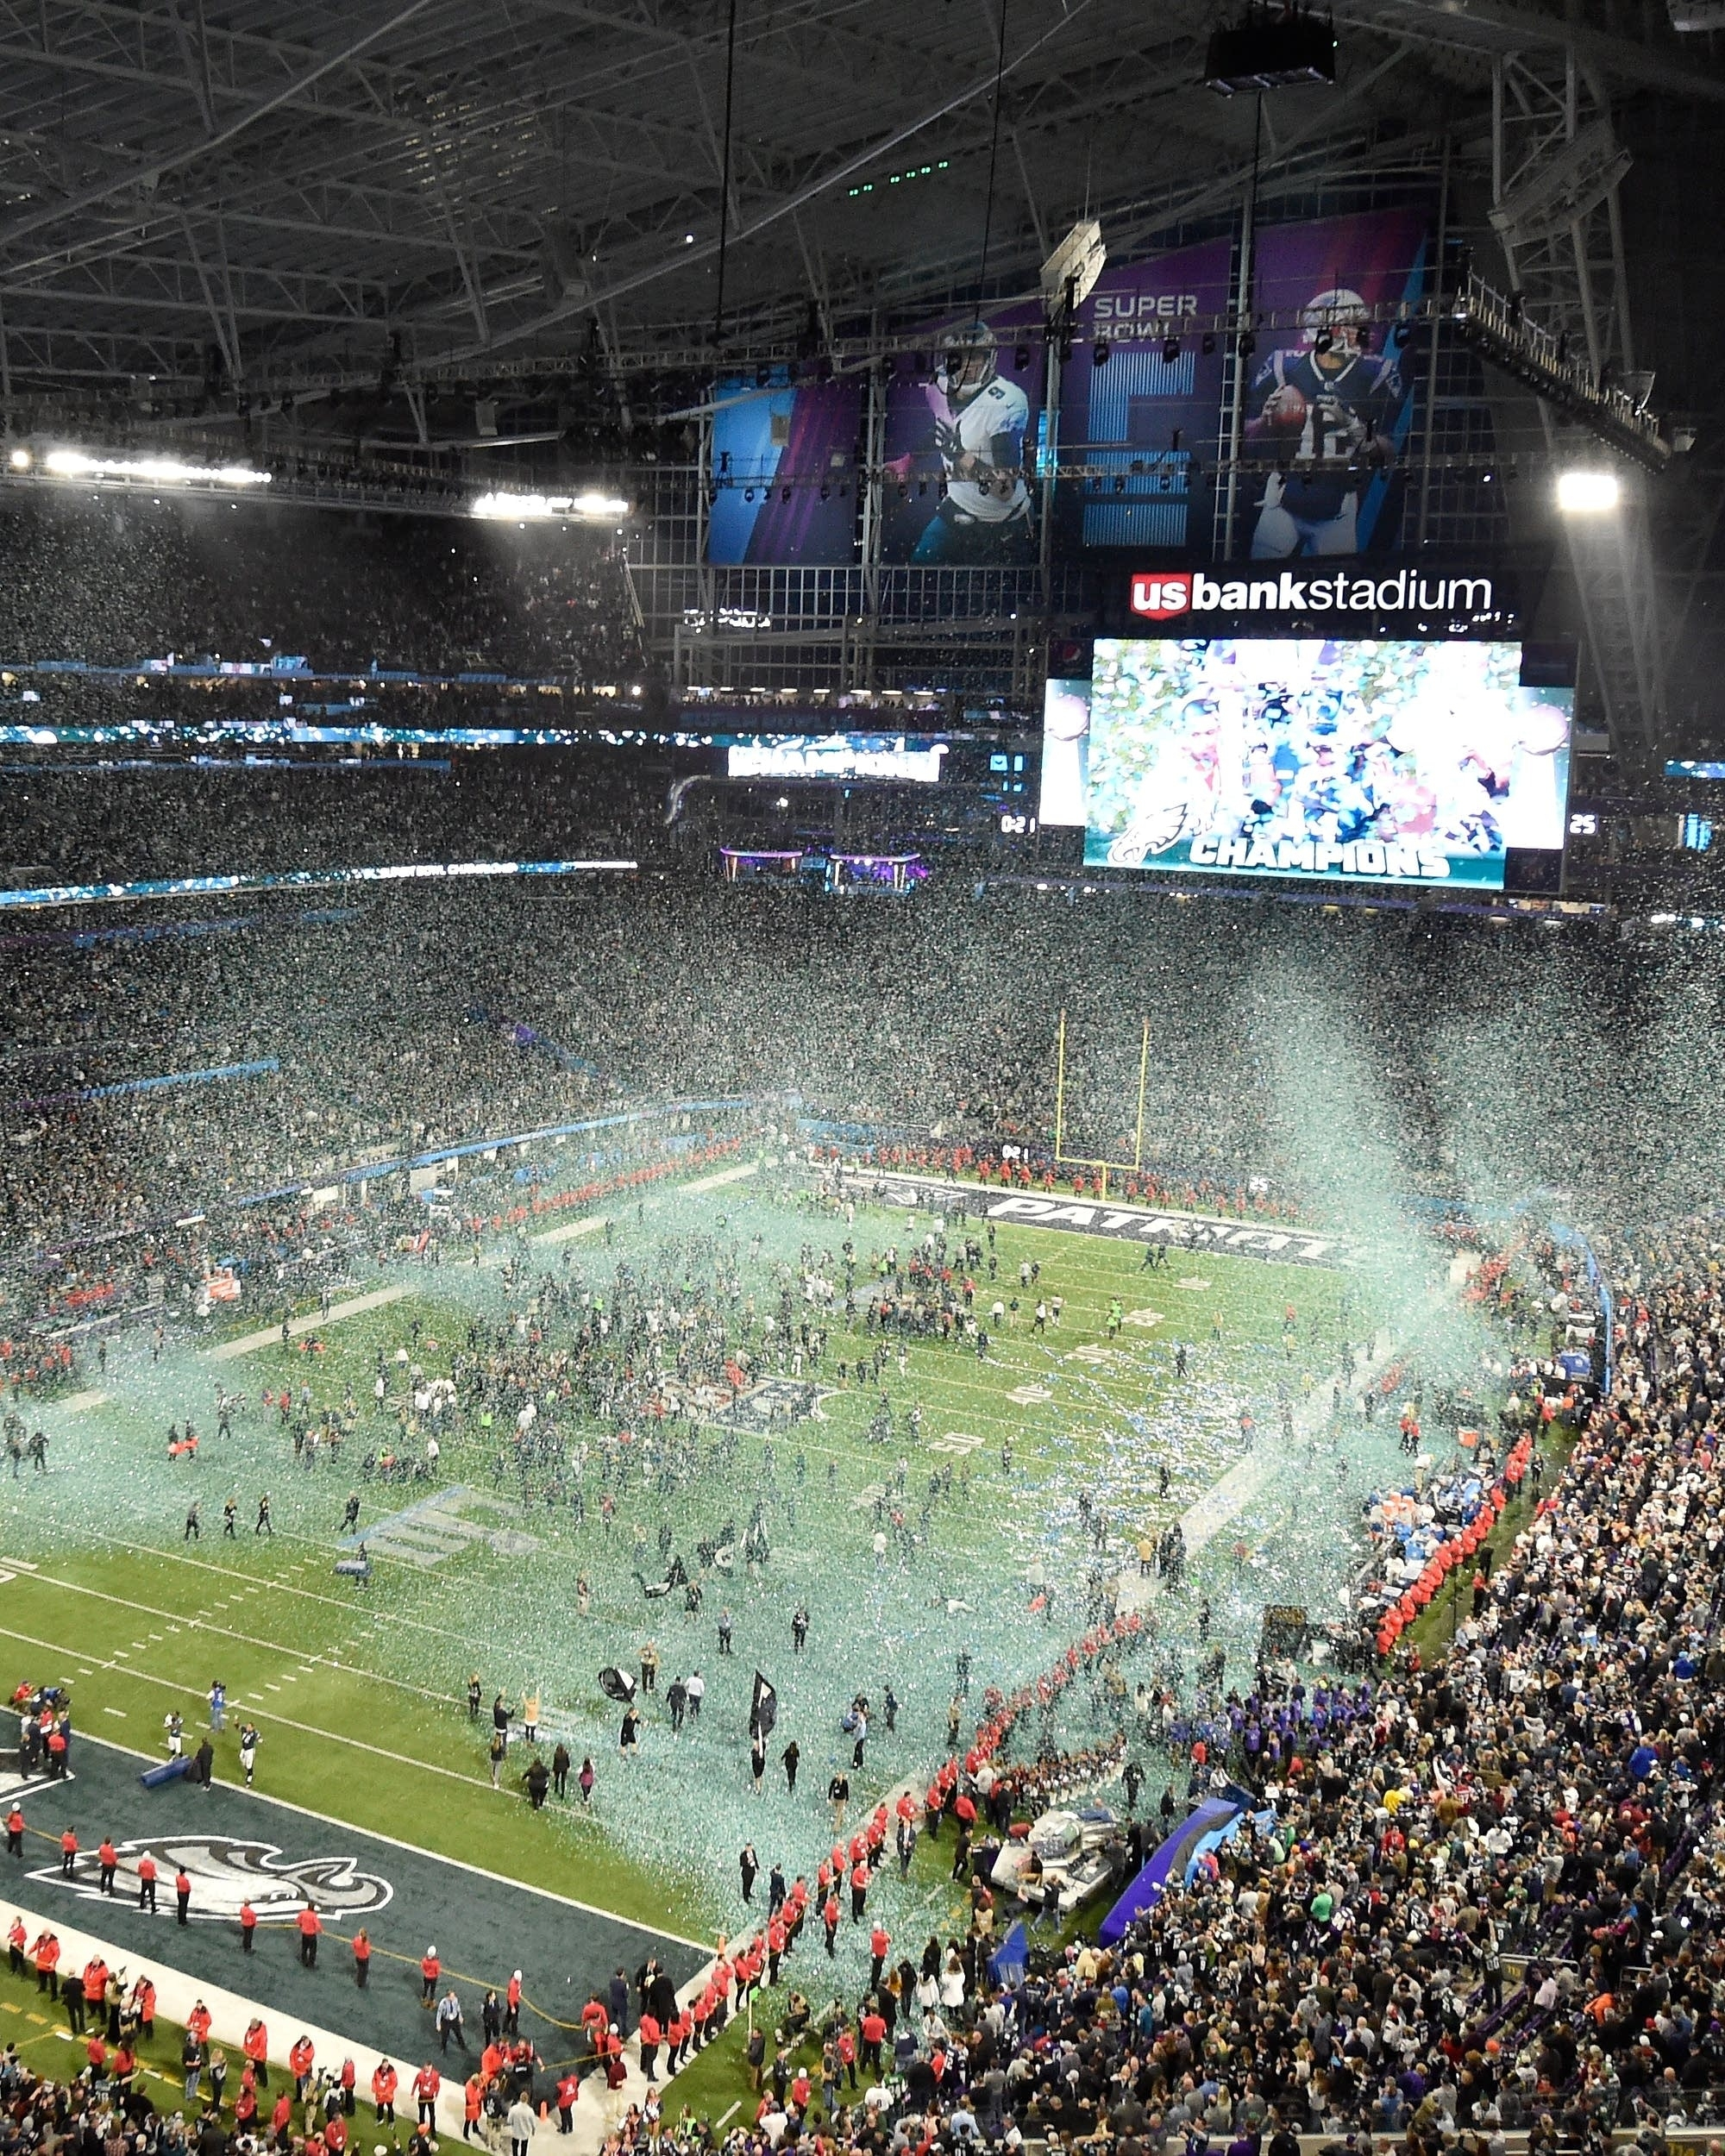 Minneapolis Super Bowl Netted $370 Million, Report Says with Super Bowl Stadium Address